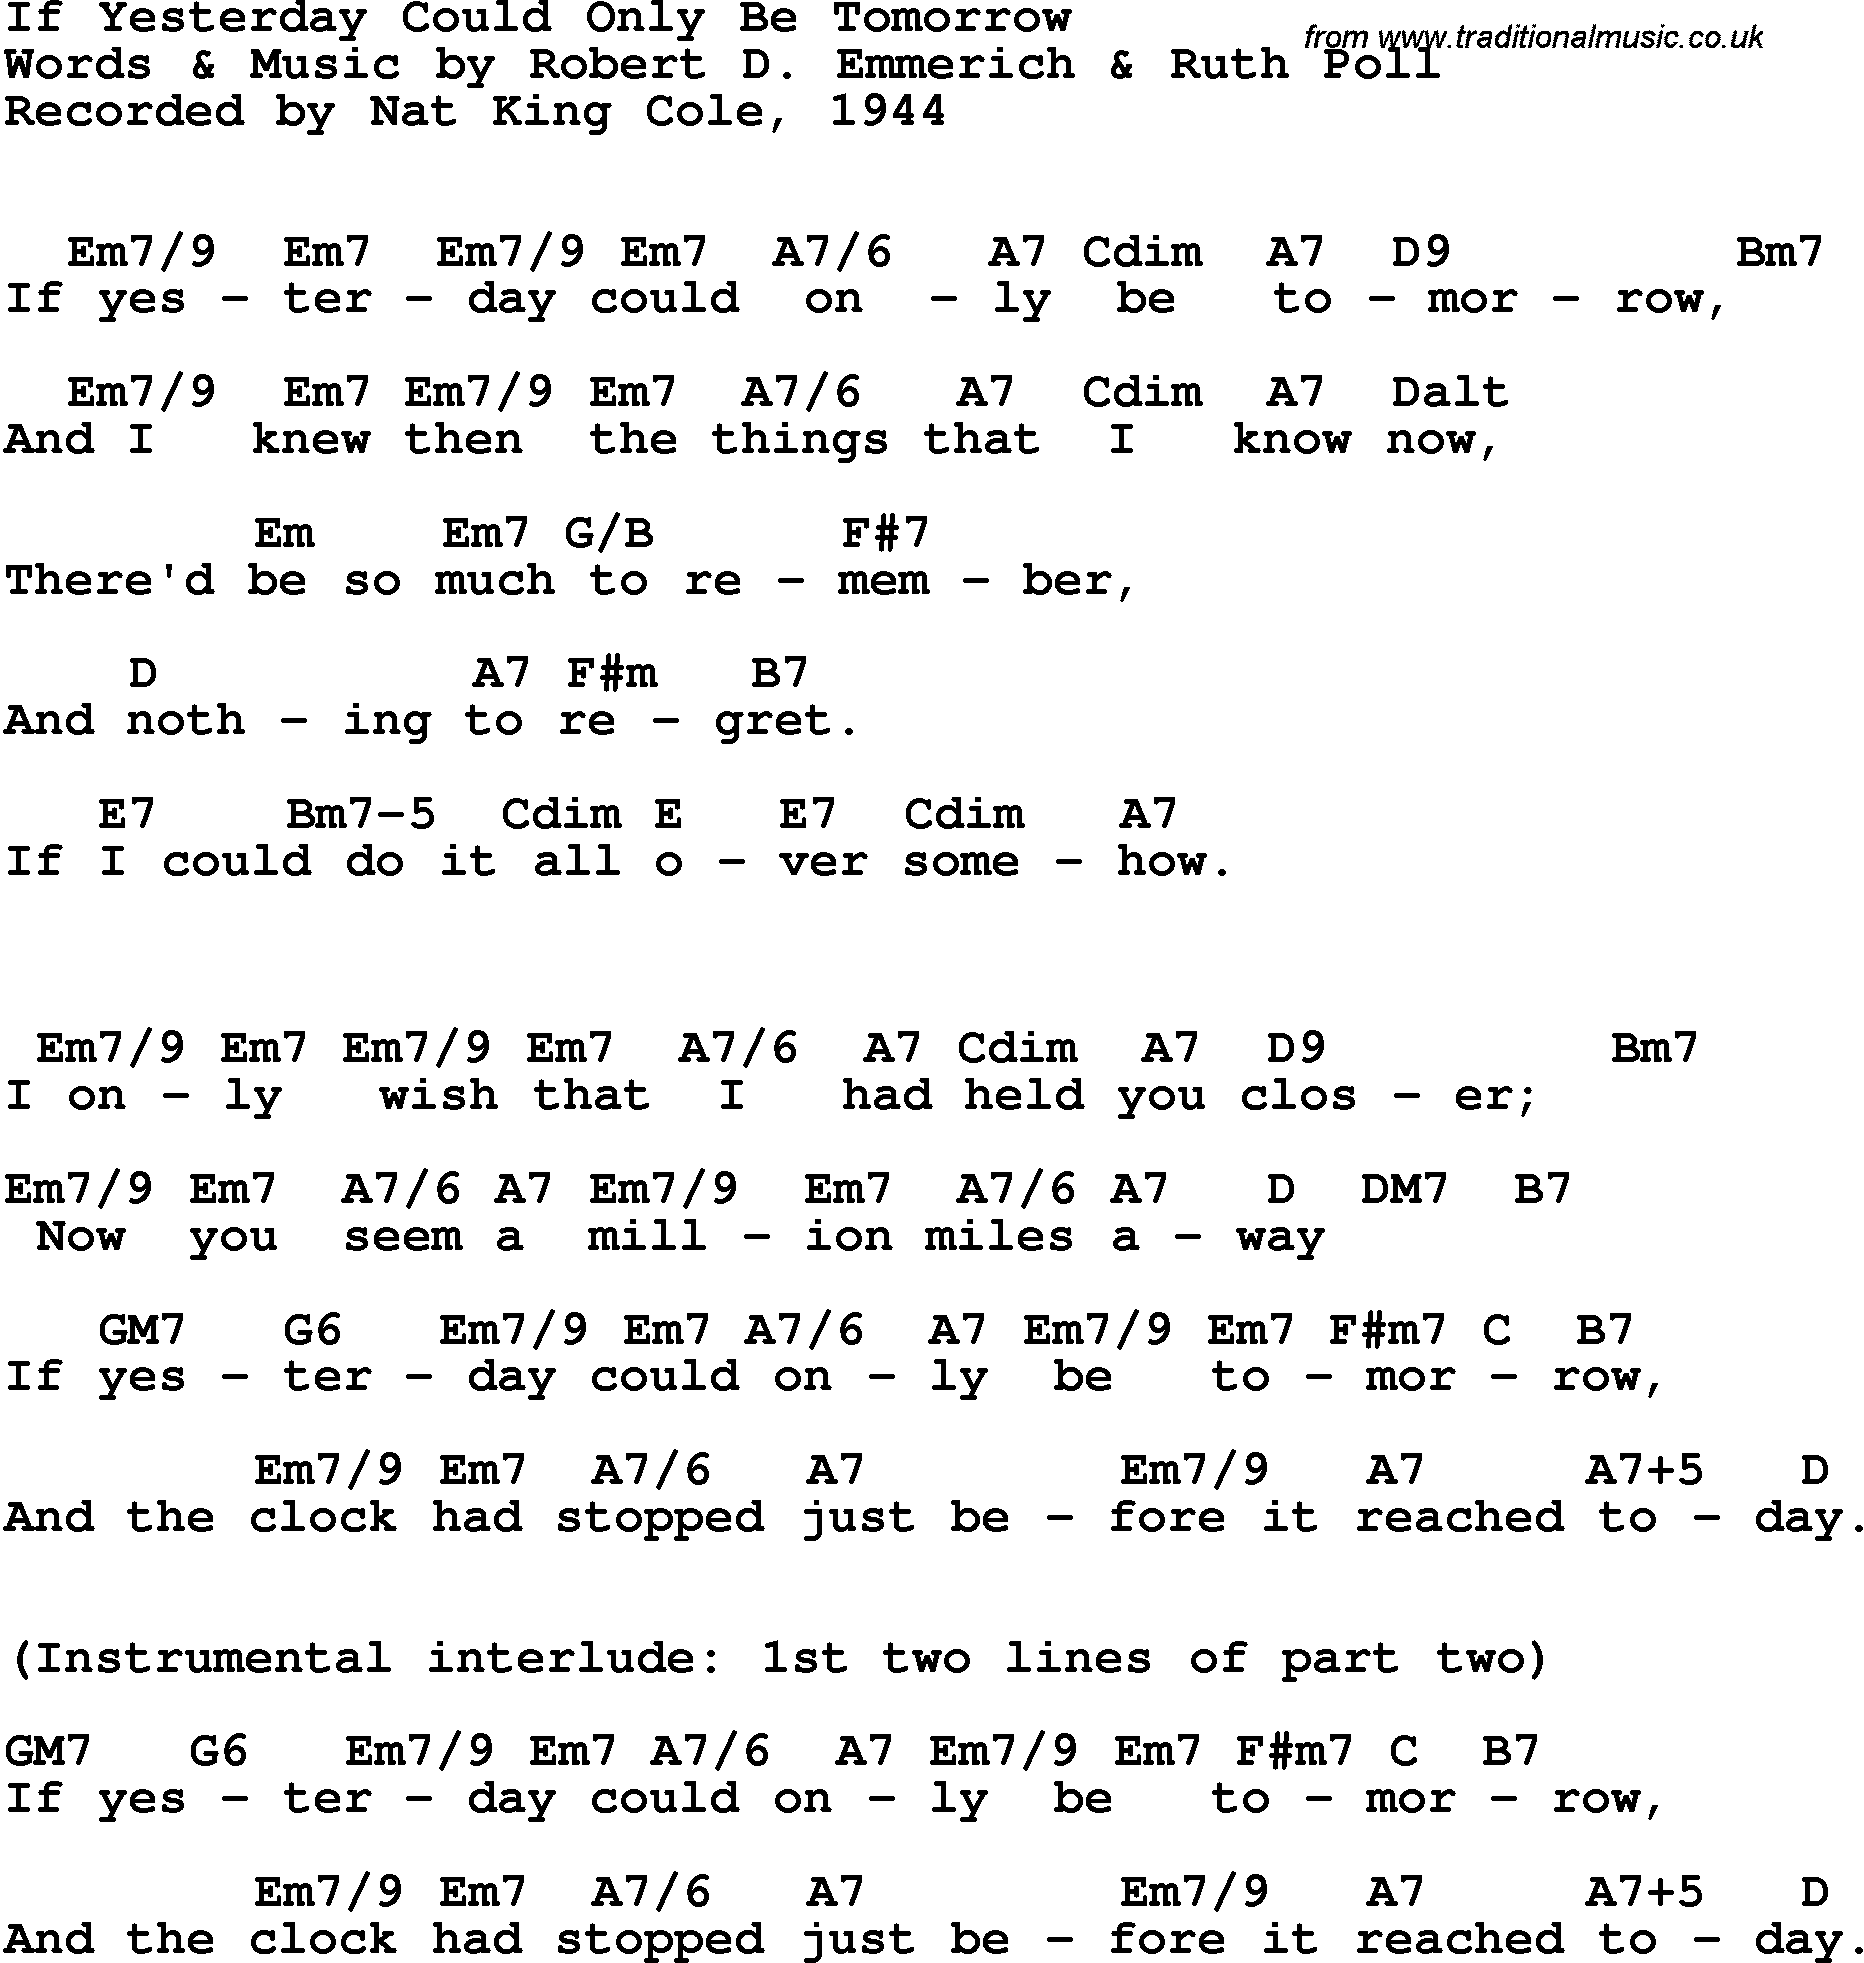 Song Lyrics With Guitar Chords For If Yesterday Could Only Be